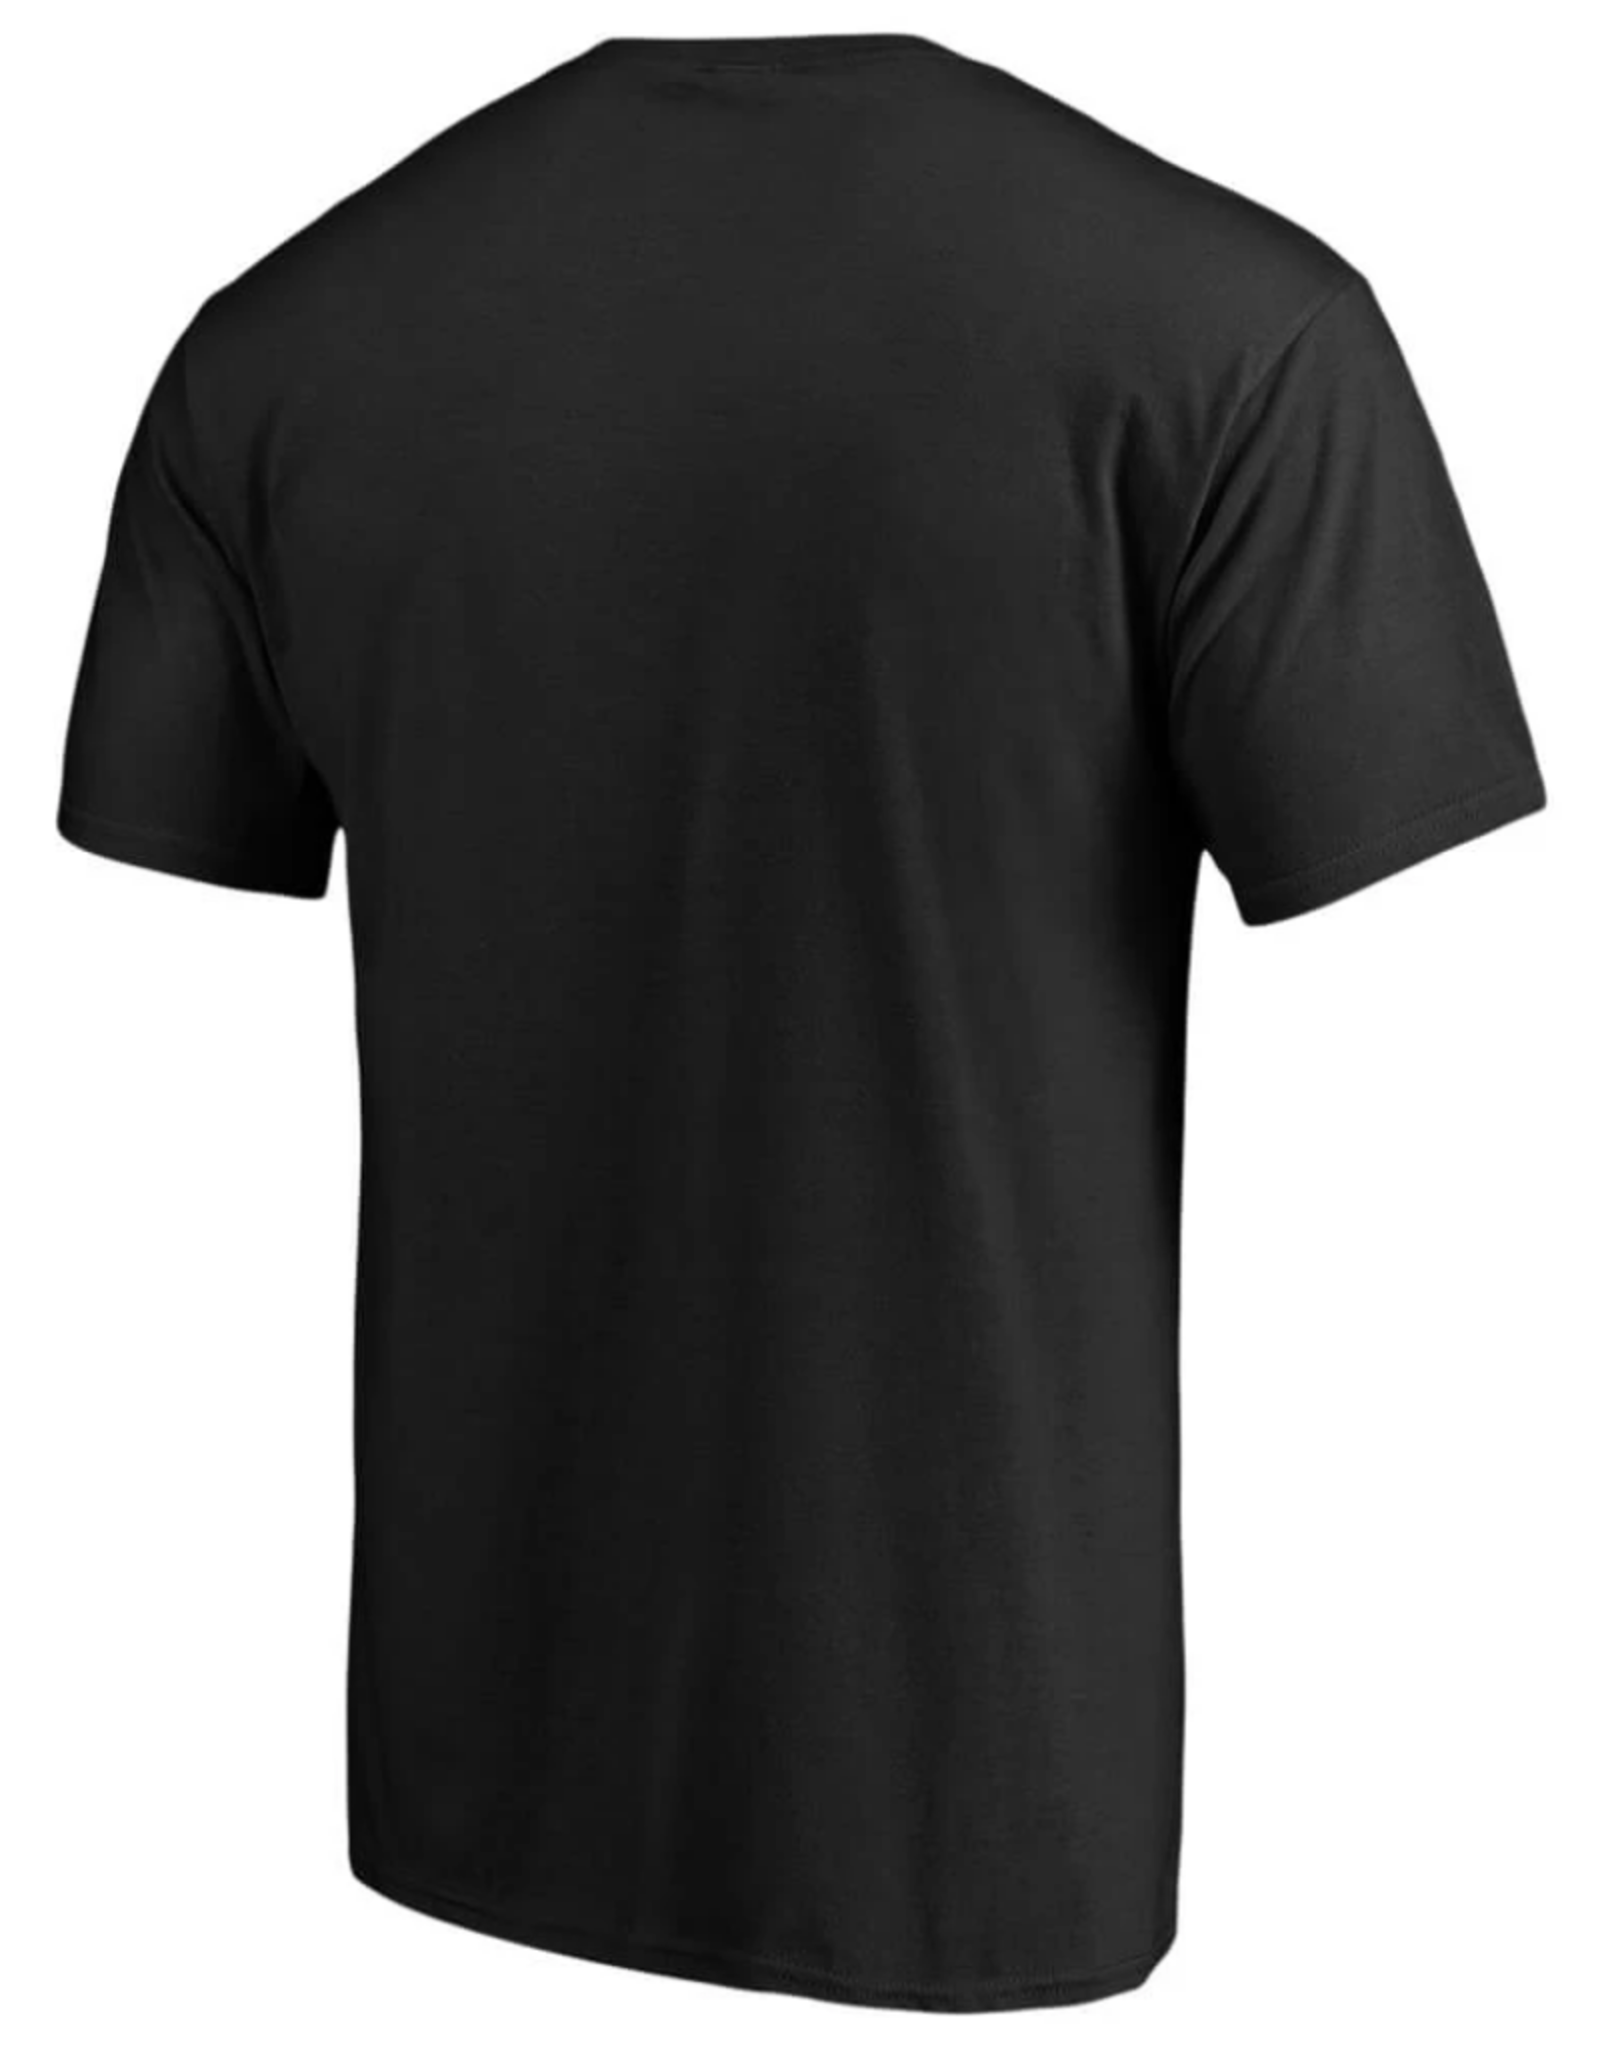 Fanatics Fanatics Men's Iconic Cotton T-Shirt Toronto Raptors Black